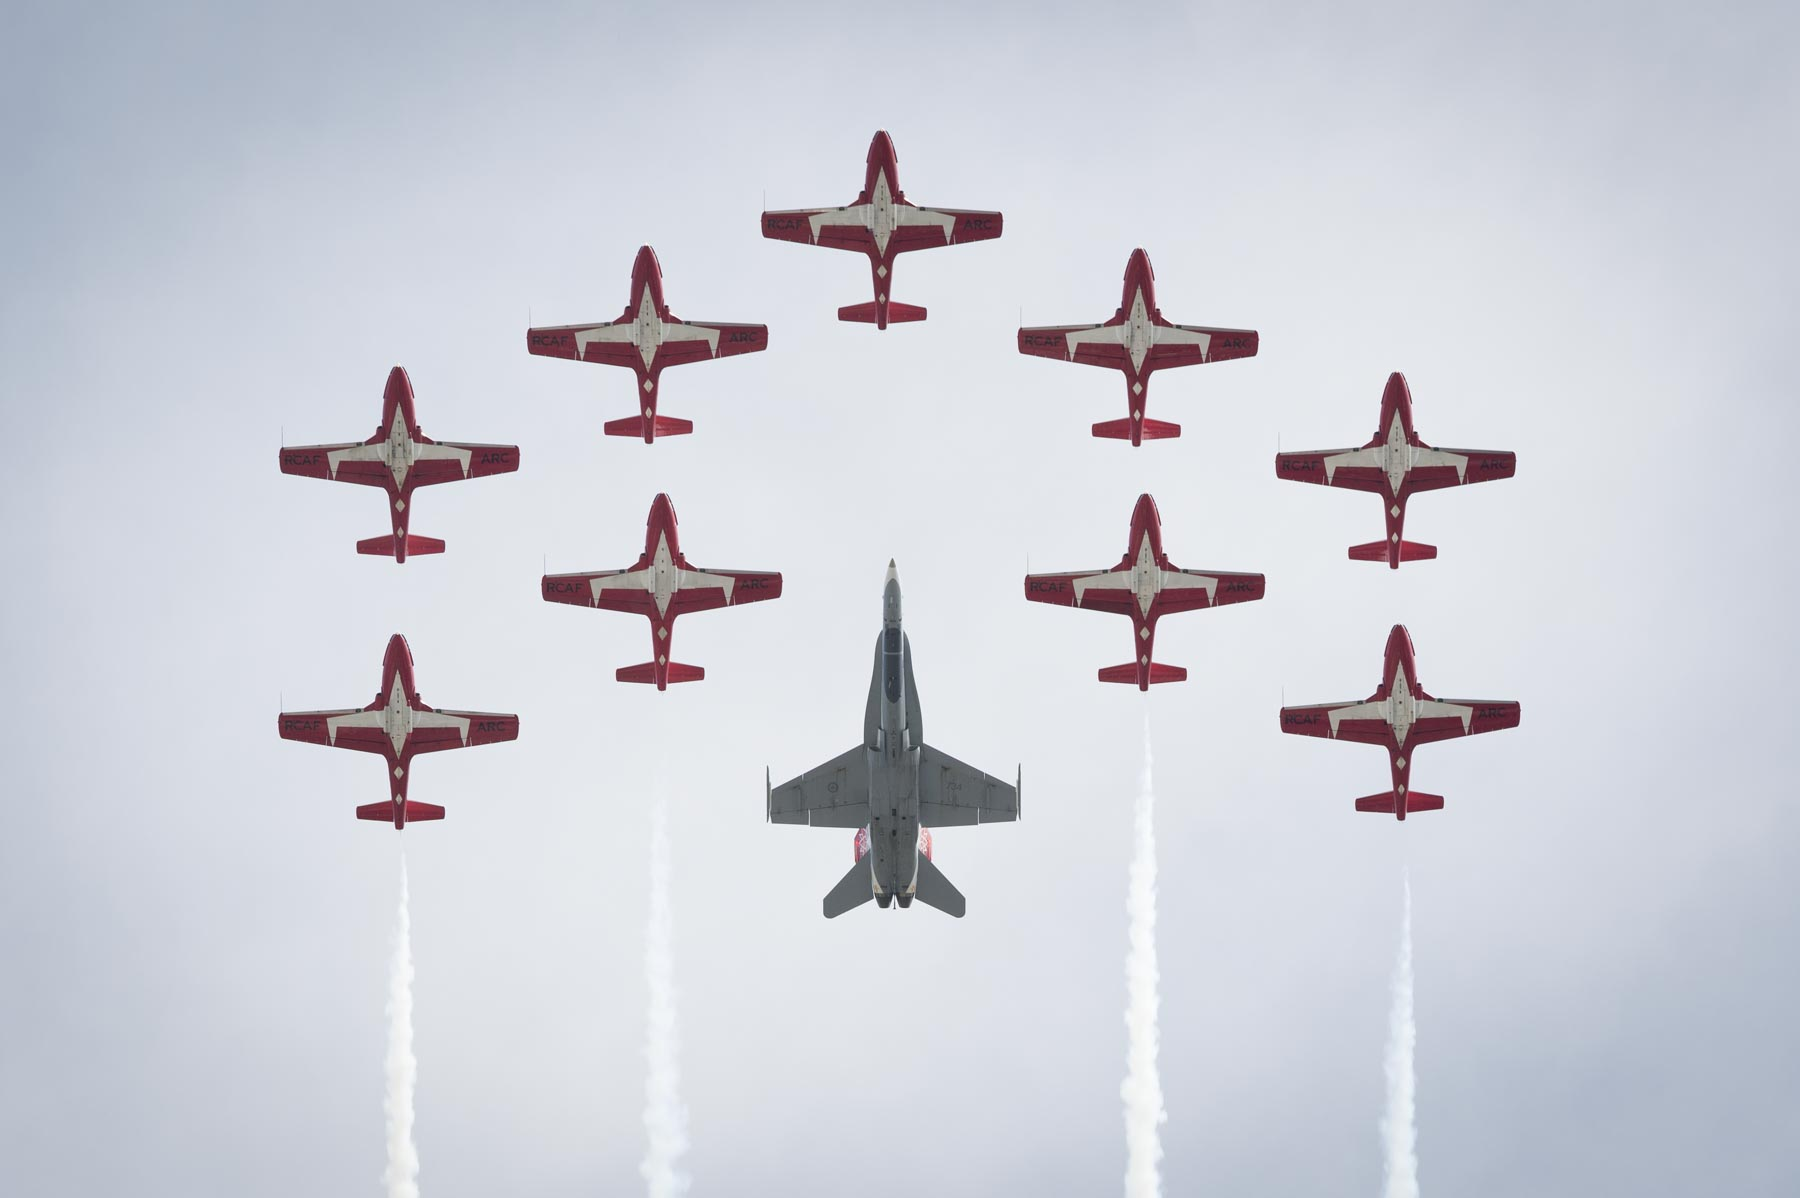 The Canadian Forces Snowbirds also participated in the flypast.